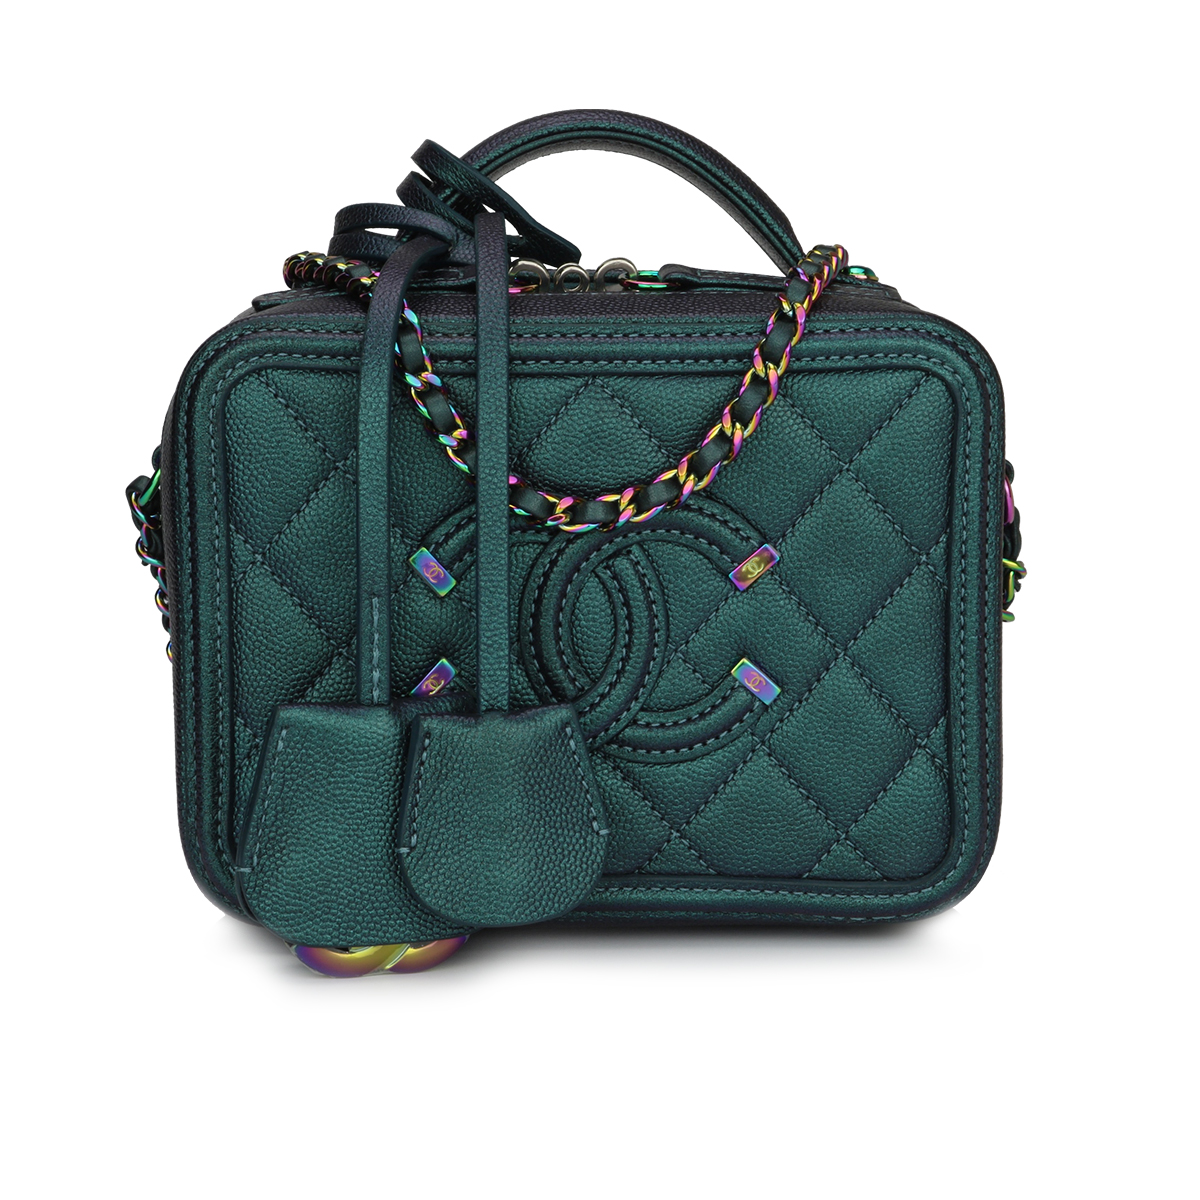 d0af7900b96e Home/Chanel/CHANEL Small CC Filigree Vanity Case Iridescent Dark Turquoise  Caviar Rainbow Hardware 2018. ; 